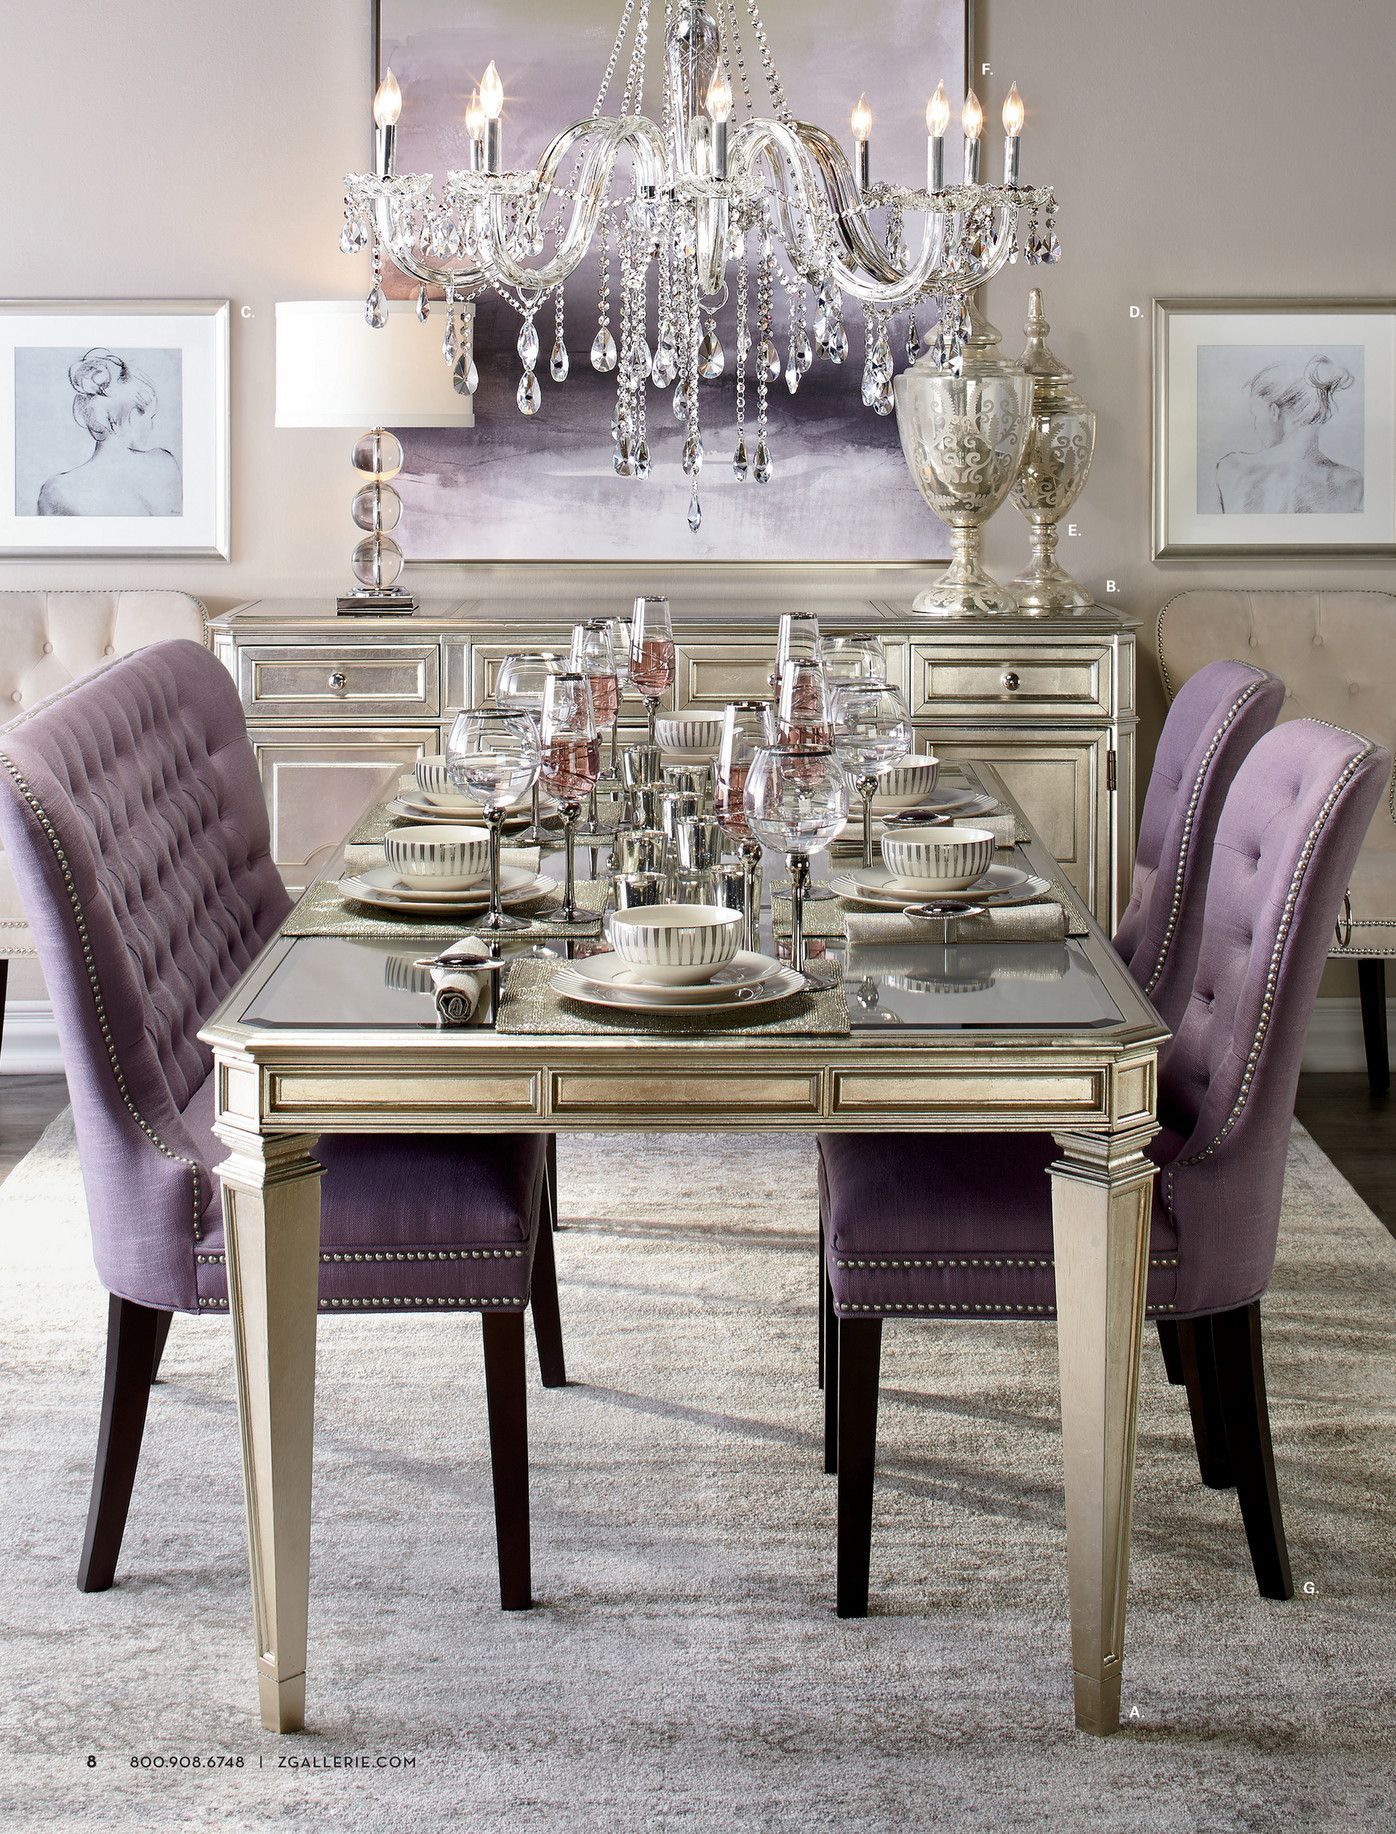 Z Gallerie - Celebrate In Style - Page 8-9 | Dining | Pinterest ...